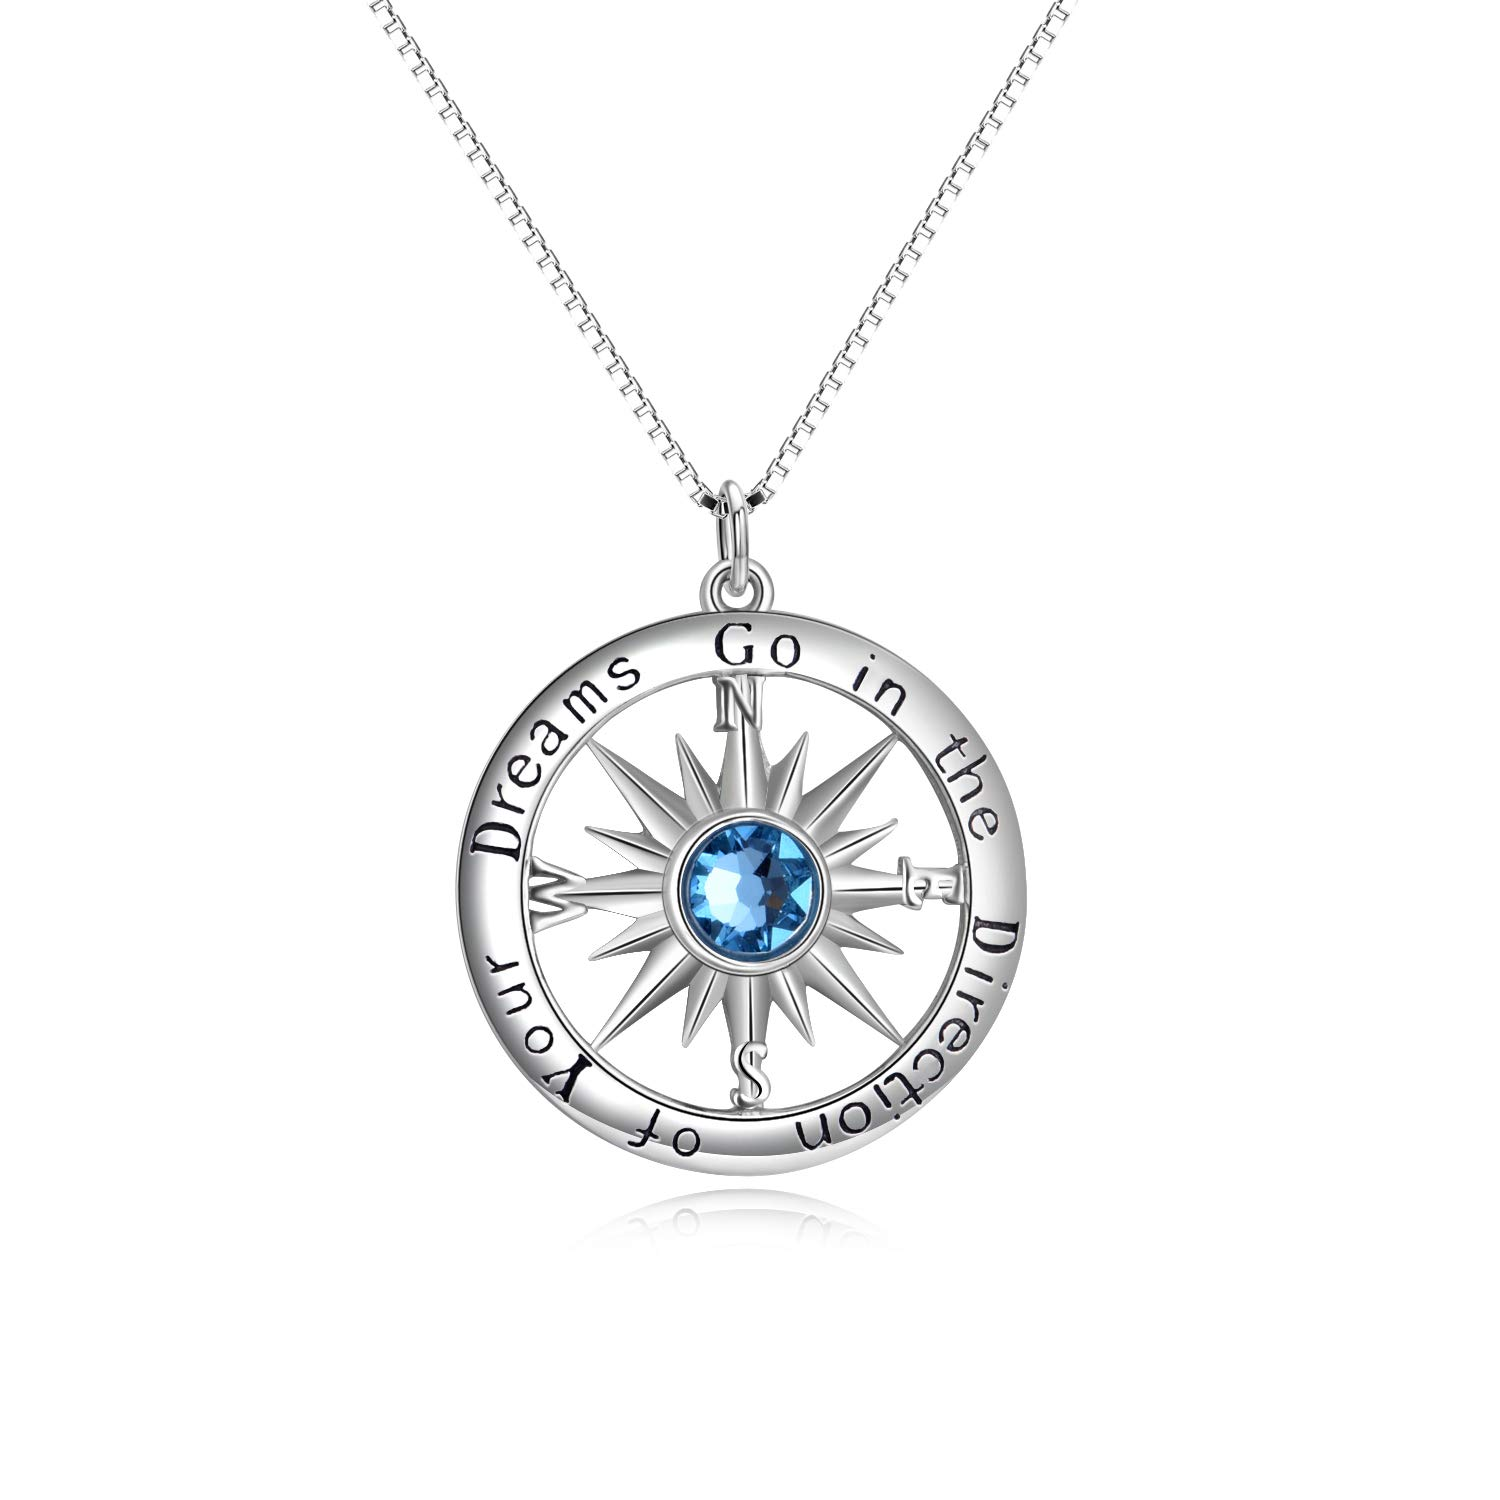 AOBOCO S925 Sterling Silver Blue Birthstone Sun Compass Necklace for Women Men Kids Go in The Direction of Your Dreams Engraved Pendant for Best Friend Graduation Birthday Gift (18IN Box Chain)